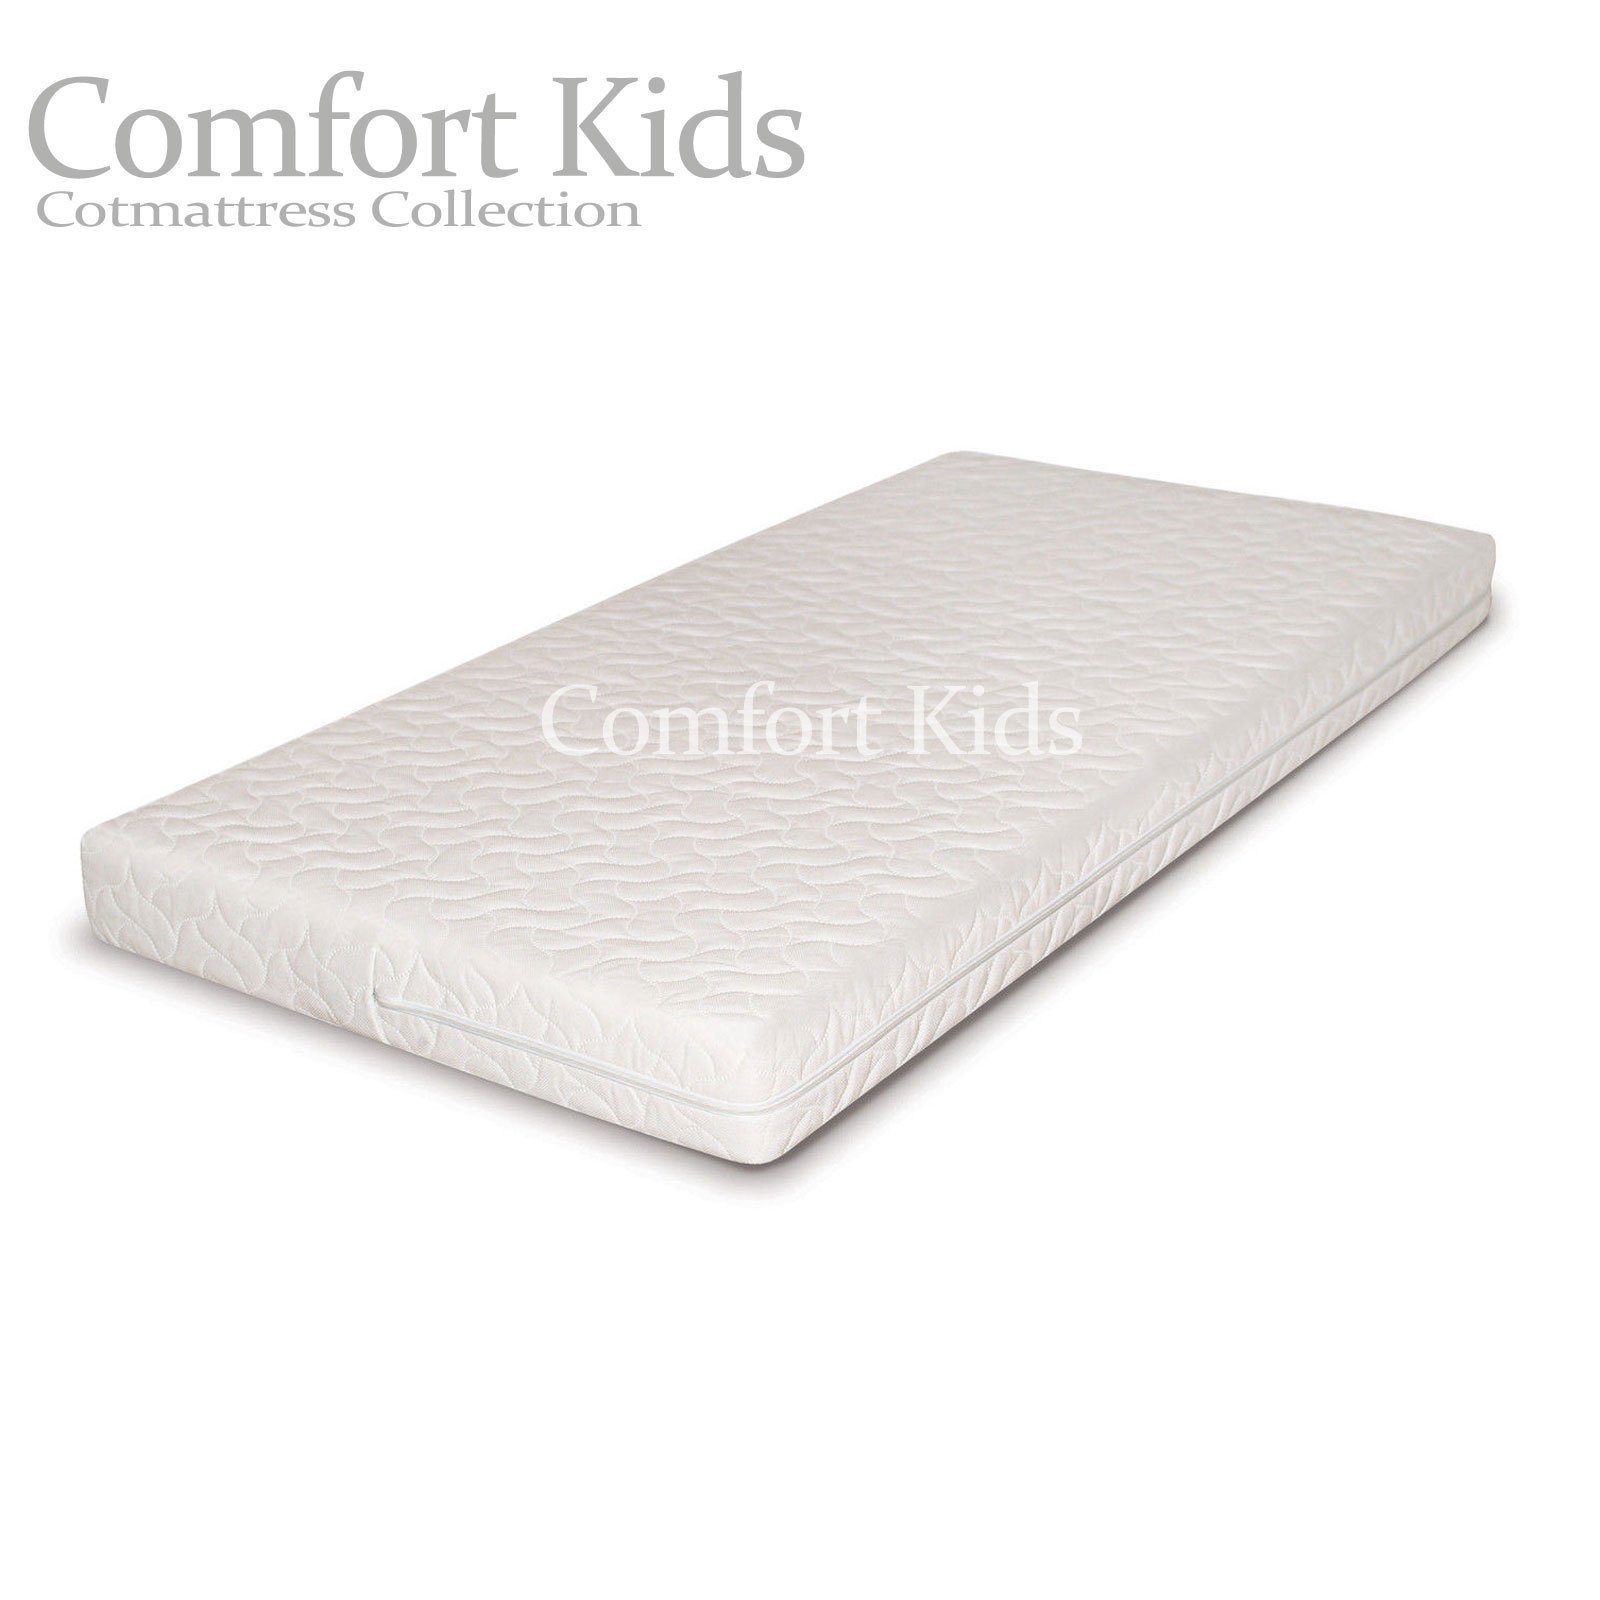 H /& H Traders Quilted Anti-Allergenic Breathable Foam Cot Mattress 126 x 62.5 x 10 cm